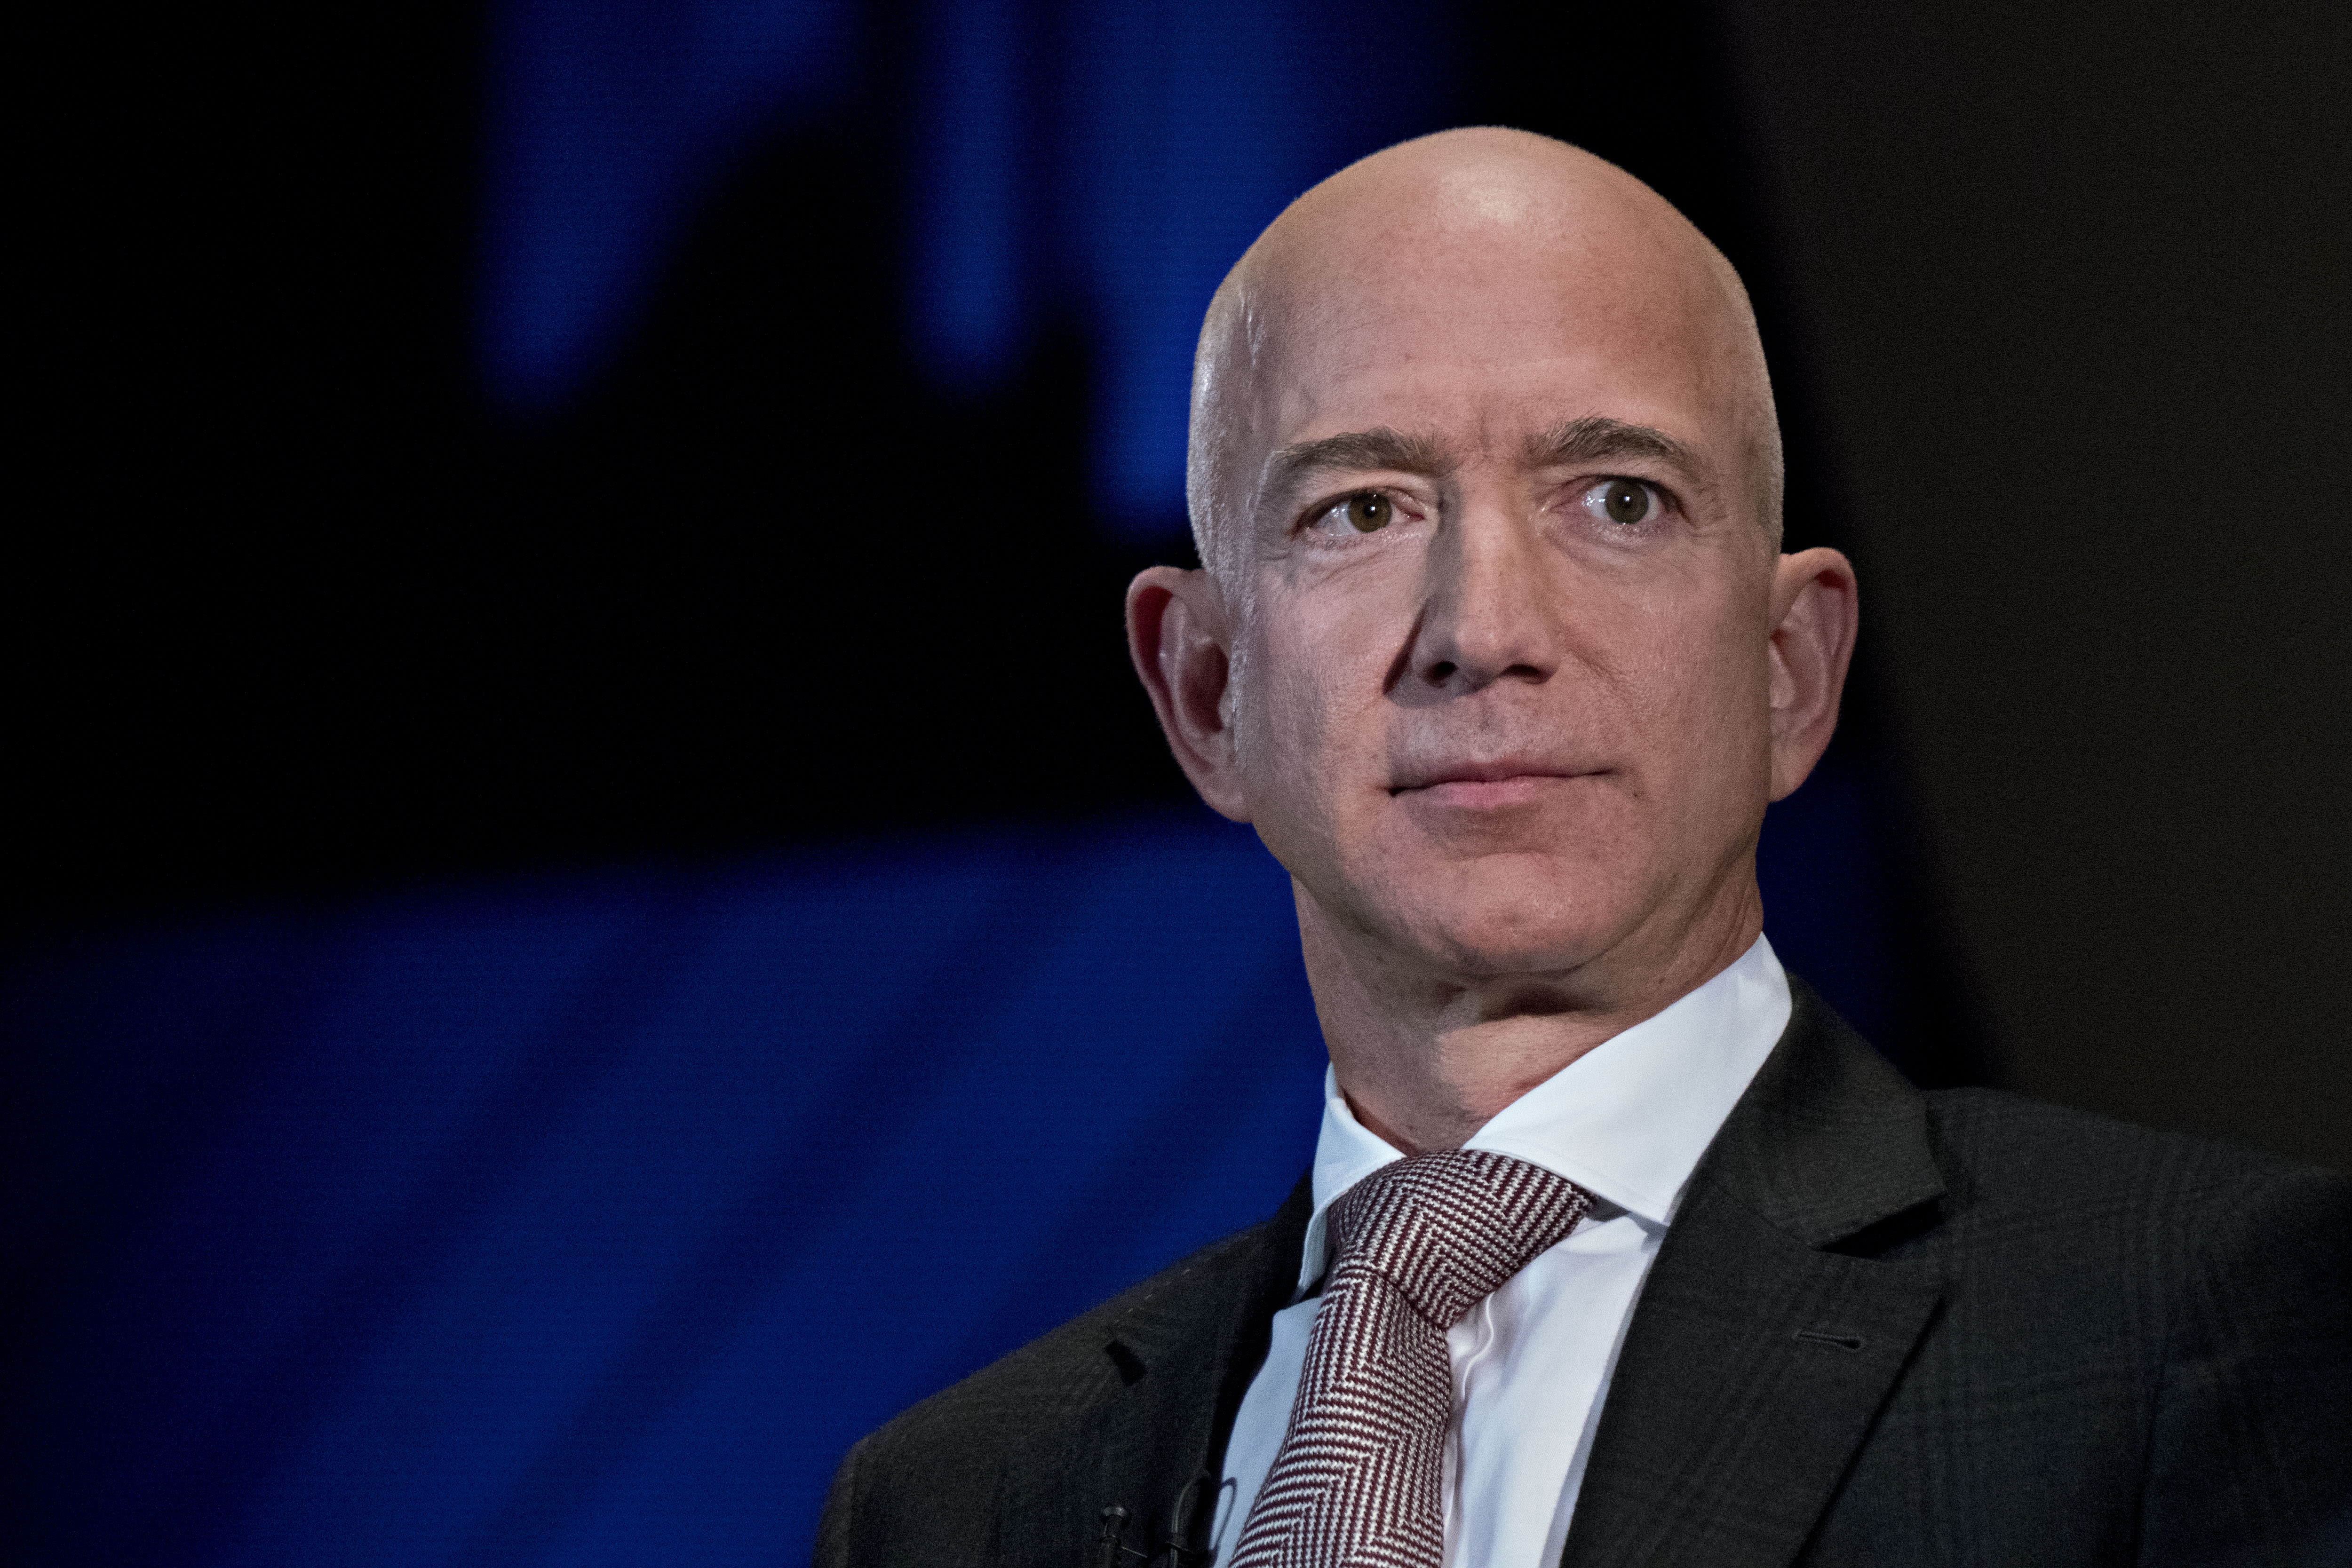 Here's what every major analyst predicts for Amazon's earnings report after the bell